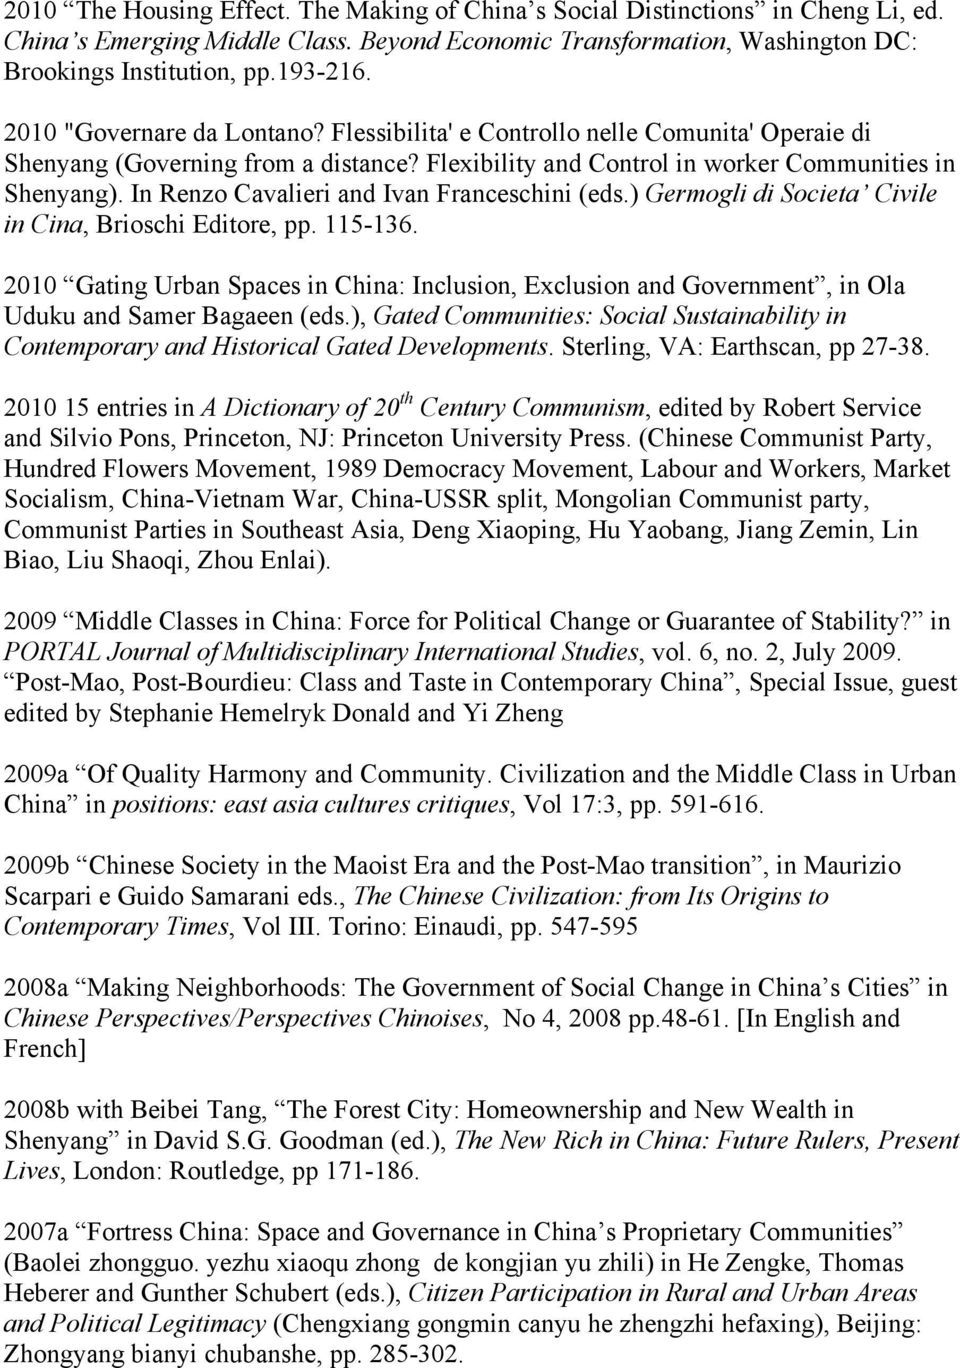 In Renzo Cavalieri and Ivan Franceschini (eds.) Germogli di Societa Civile in Cina, Brioschi Editore, pp. 115-136.